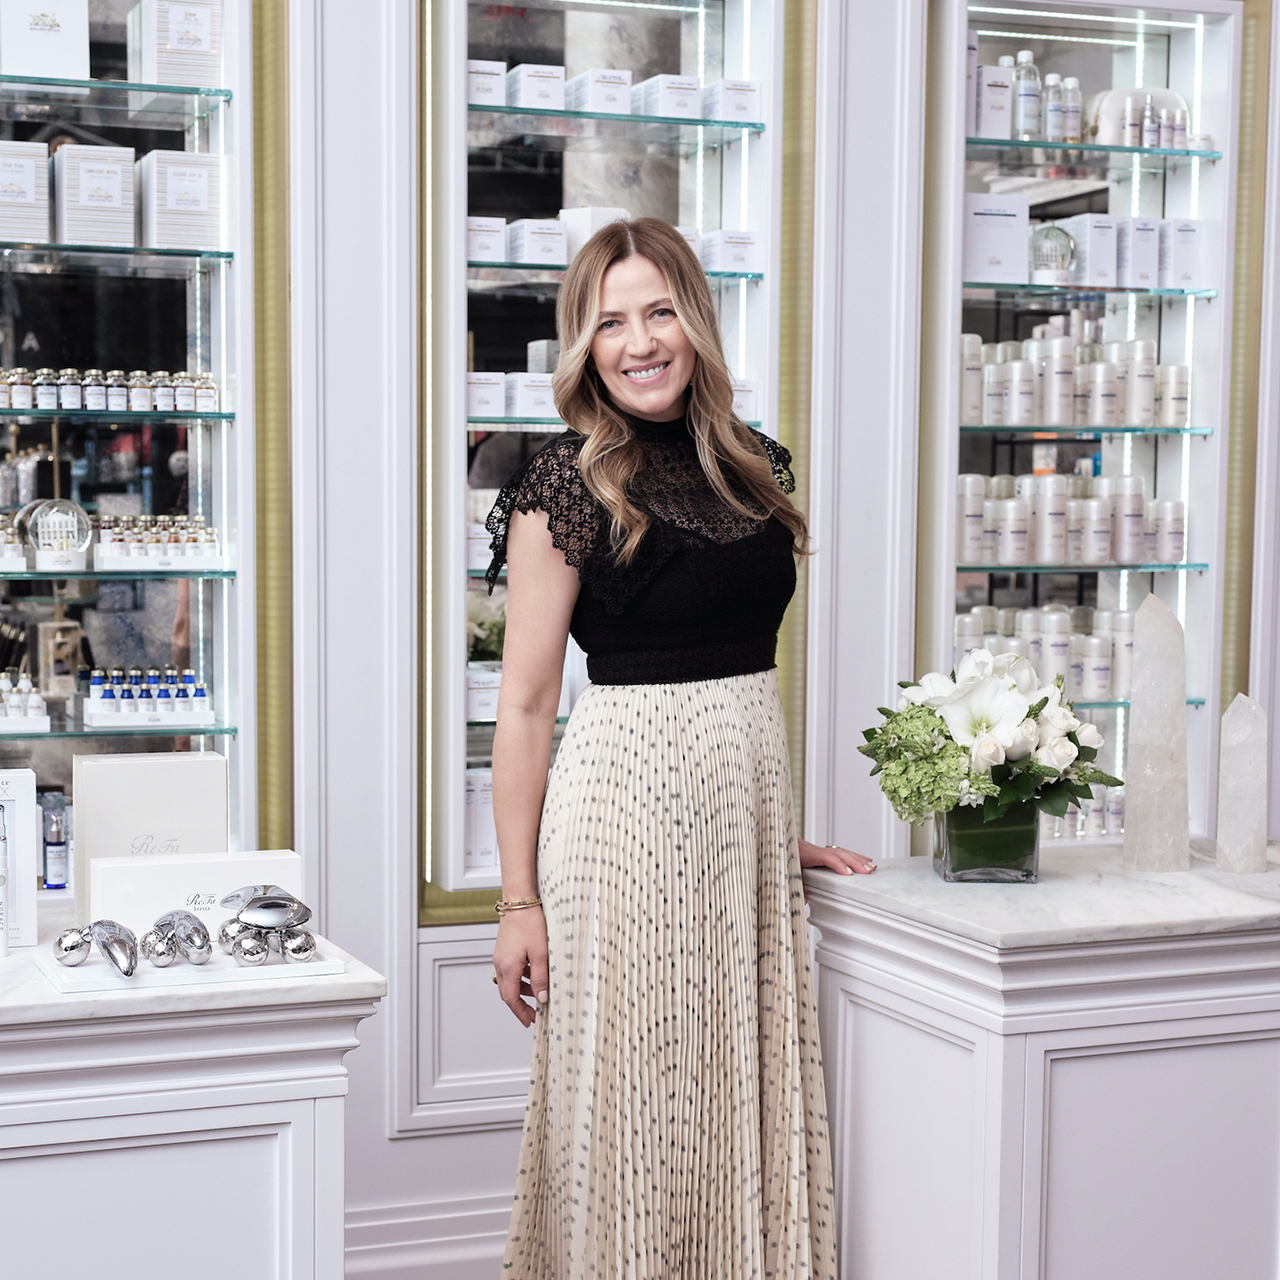 NEW BEAUTY: The Products Top Aestheticians Are Using Up During Quarantine: Danuta Mieloch, Founder Rescue Spa